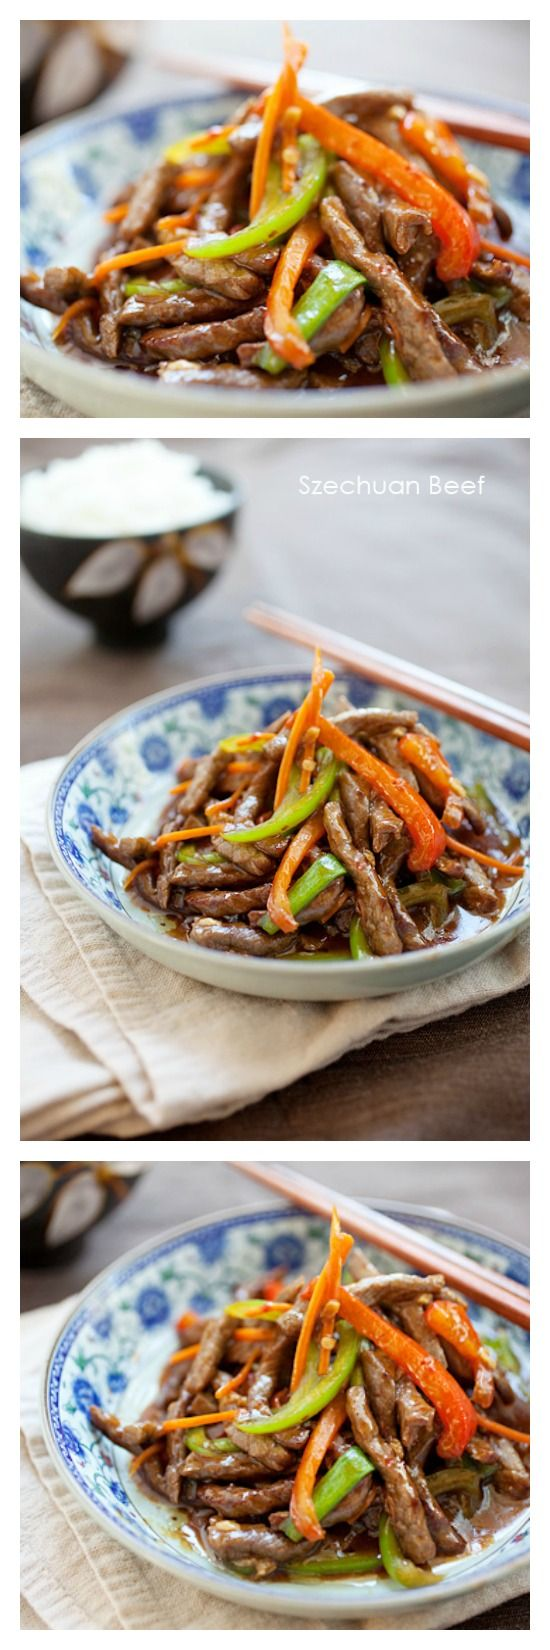 Szechuan beef. Savory with a slight heat. Yummy restaurant takeout dish that you can make at home with this super easy recipe. http://rasamalaysia.com